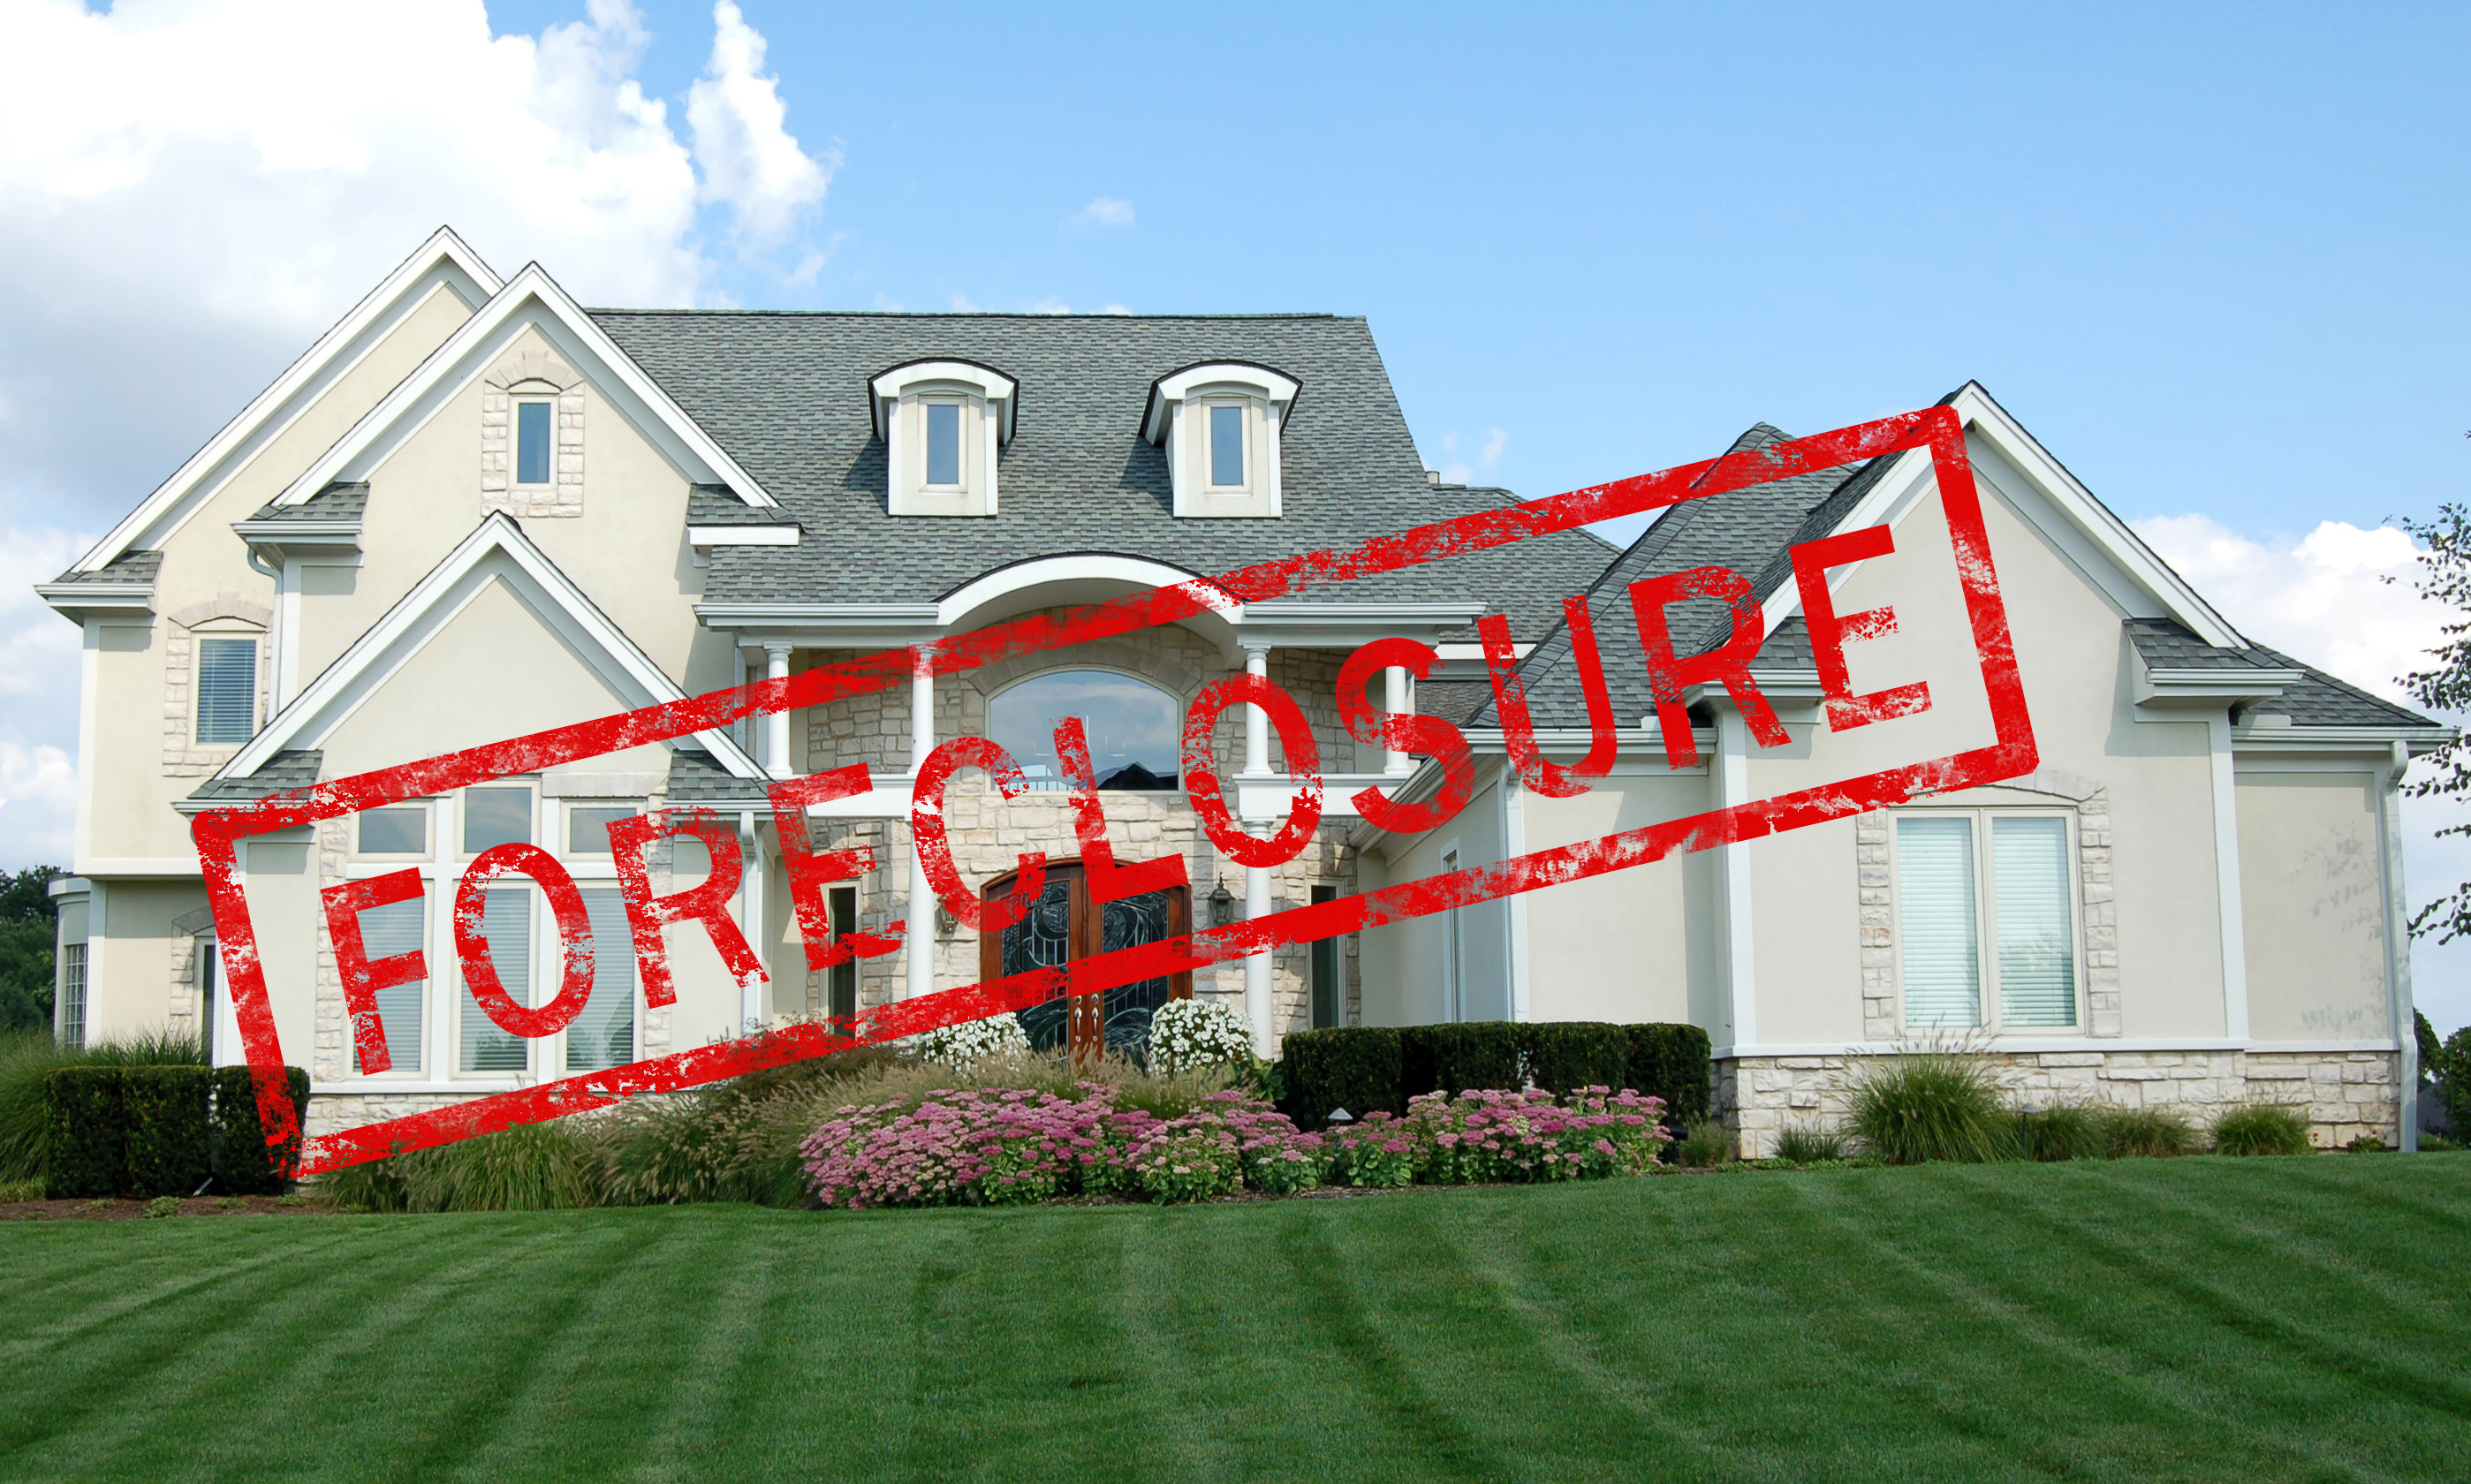 Call Ascension Appraisal when you need appraisals on Worcester foreclosures